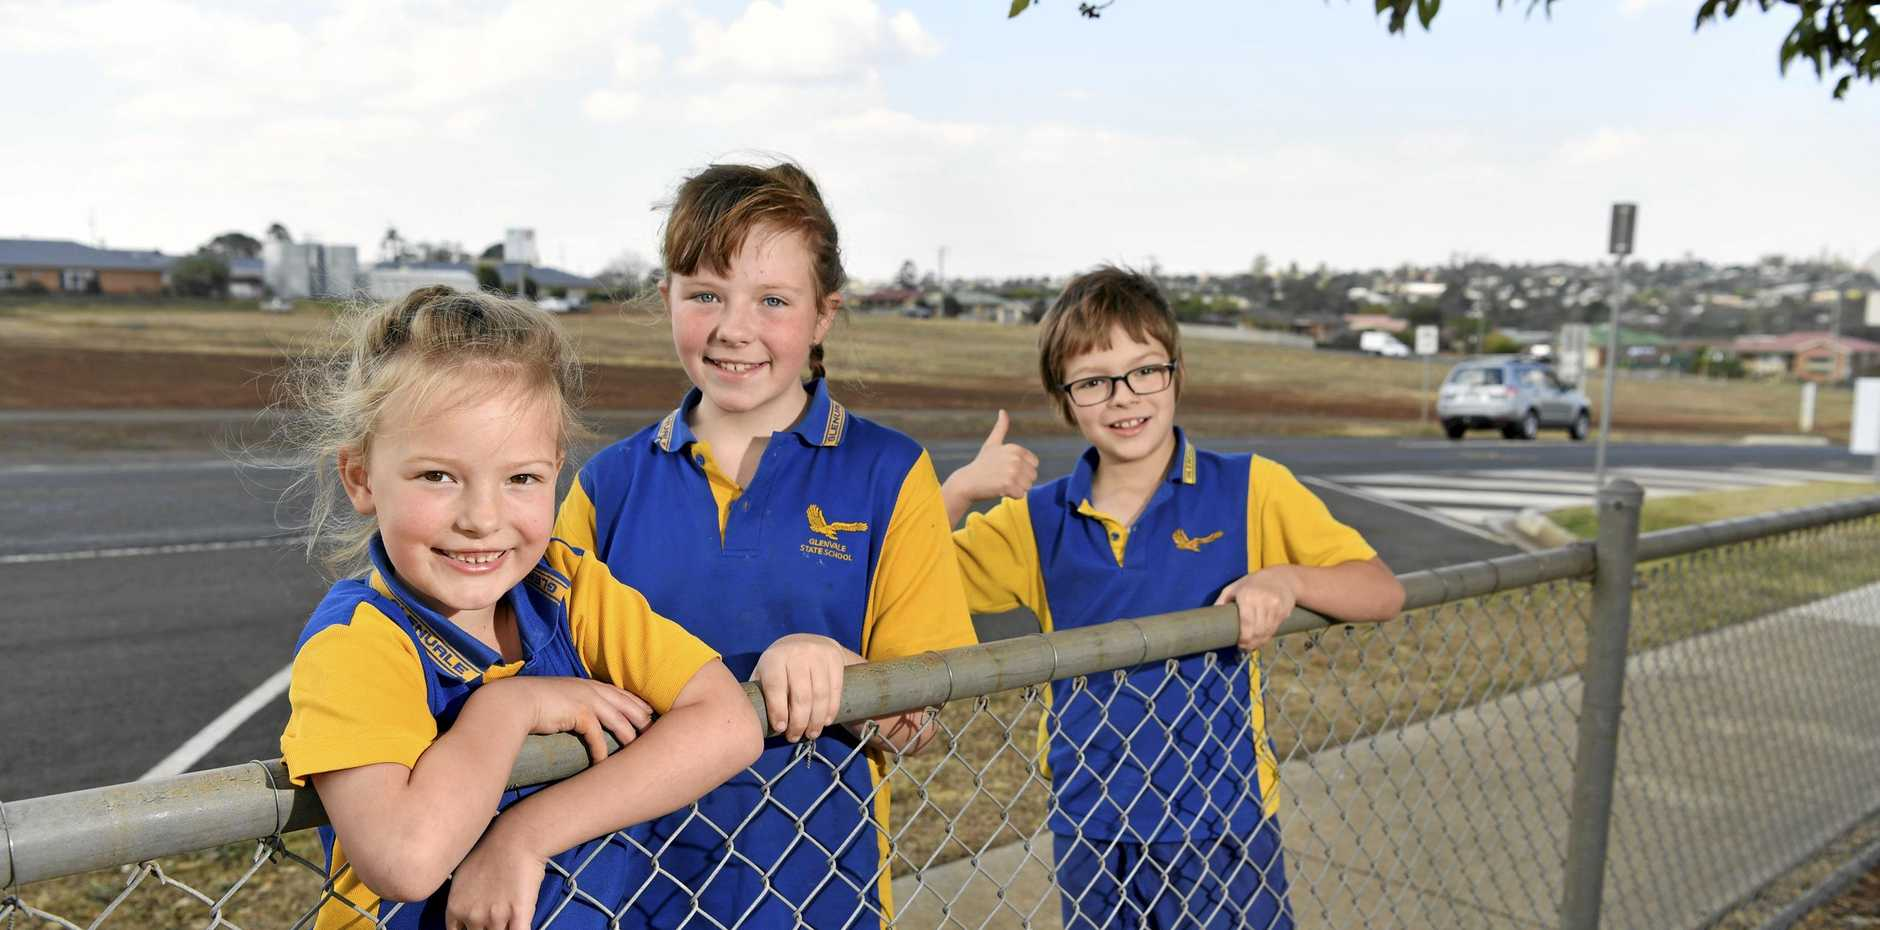 RESULTS: Excited for the new drop off and pick up carpark at Glenvale State School are siblings (from left) Rose, Maeve and Austin Greensill. Their mum Melissa was one of the prominent campaigners for the safety initiative.